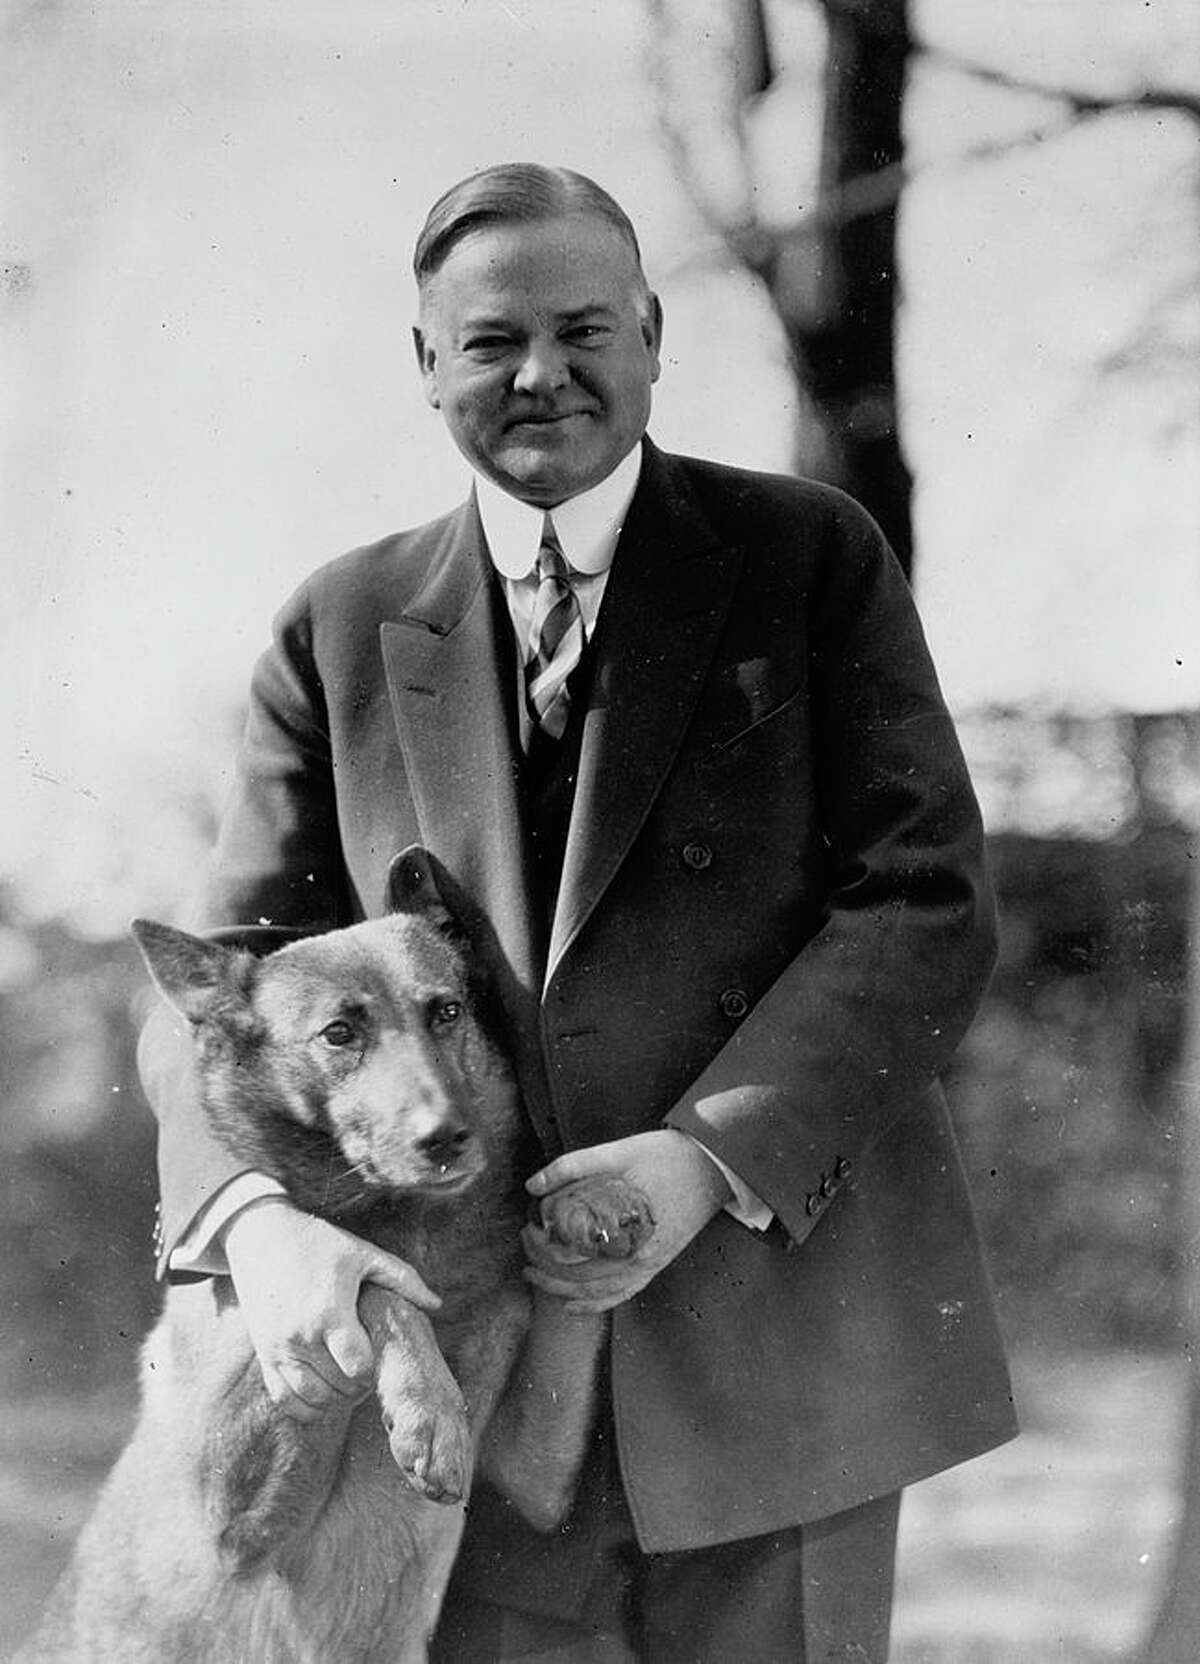 King Tut Tut, a Belgian shepherd, was one of nine dogs owned by Herbert Hoover's family. They also had two alligators.